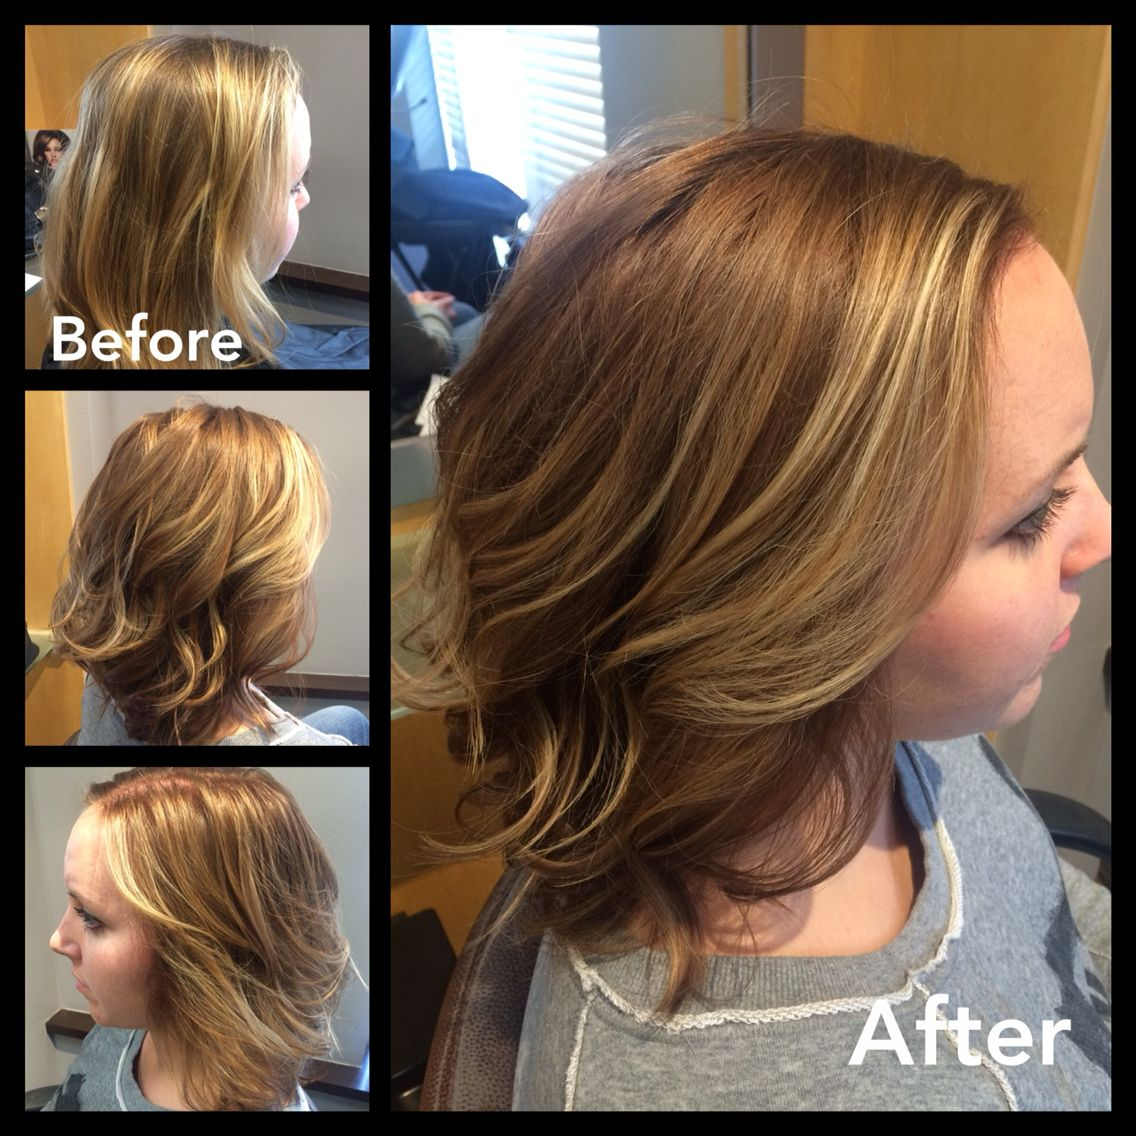 Single Process Recycling Previous Highlights Beautiful Blonde Dimension Without Sacrificing Integrity Of The Hair Beautiful Blonde Salon Style Blonde